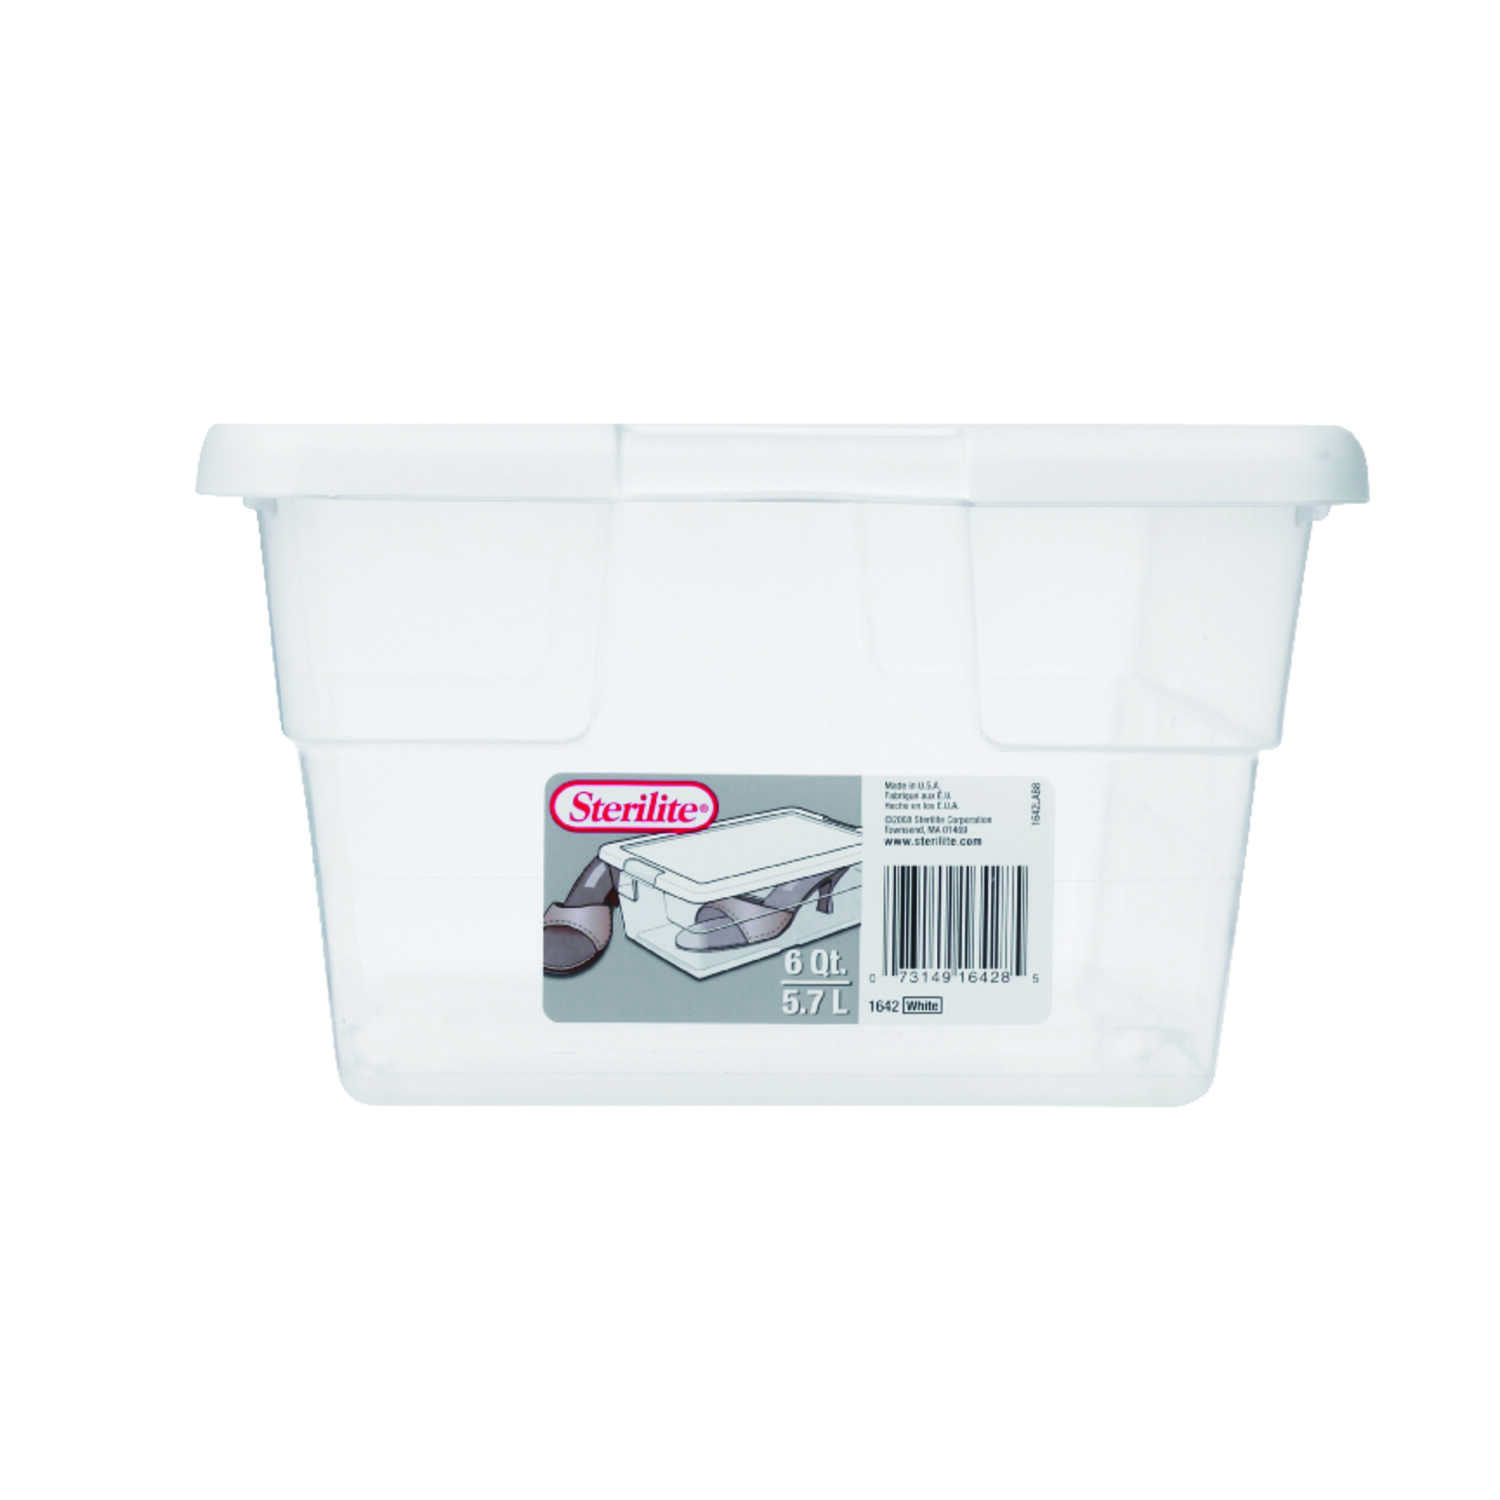 Sterilite 4.875 in. H x 13.625 in. D x 8.25 in. W Stackable Storage ...